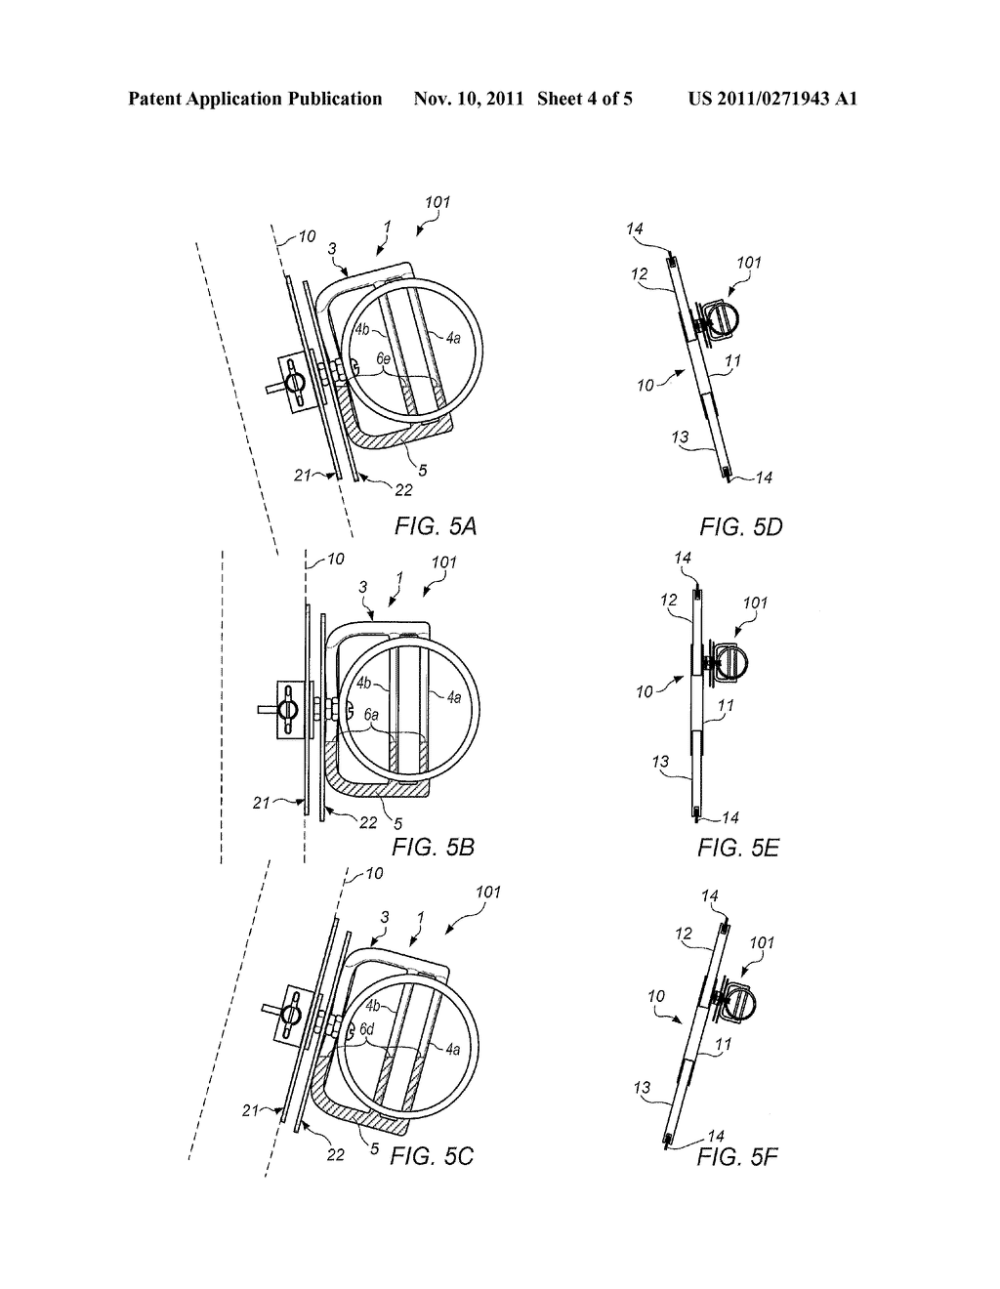 medium resolution of distance compensation sight device for aiming an archery bow diagram schematic and image 05